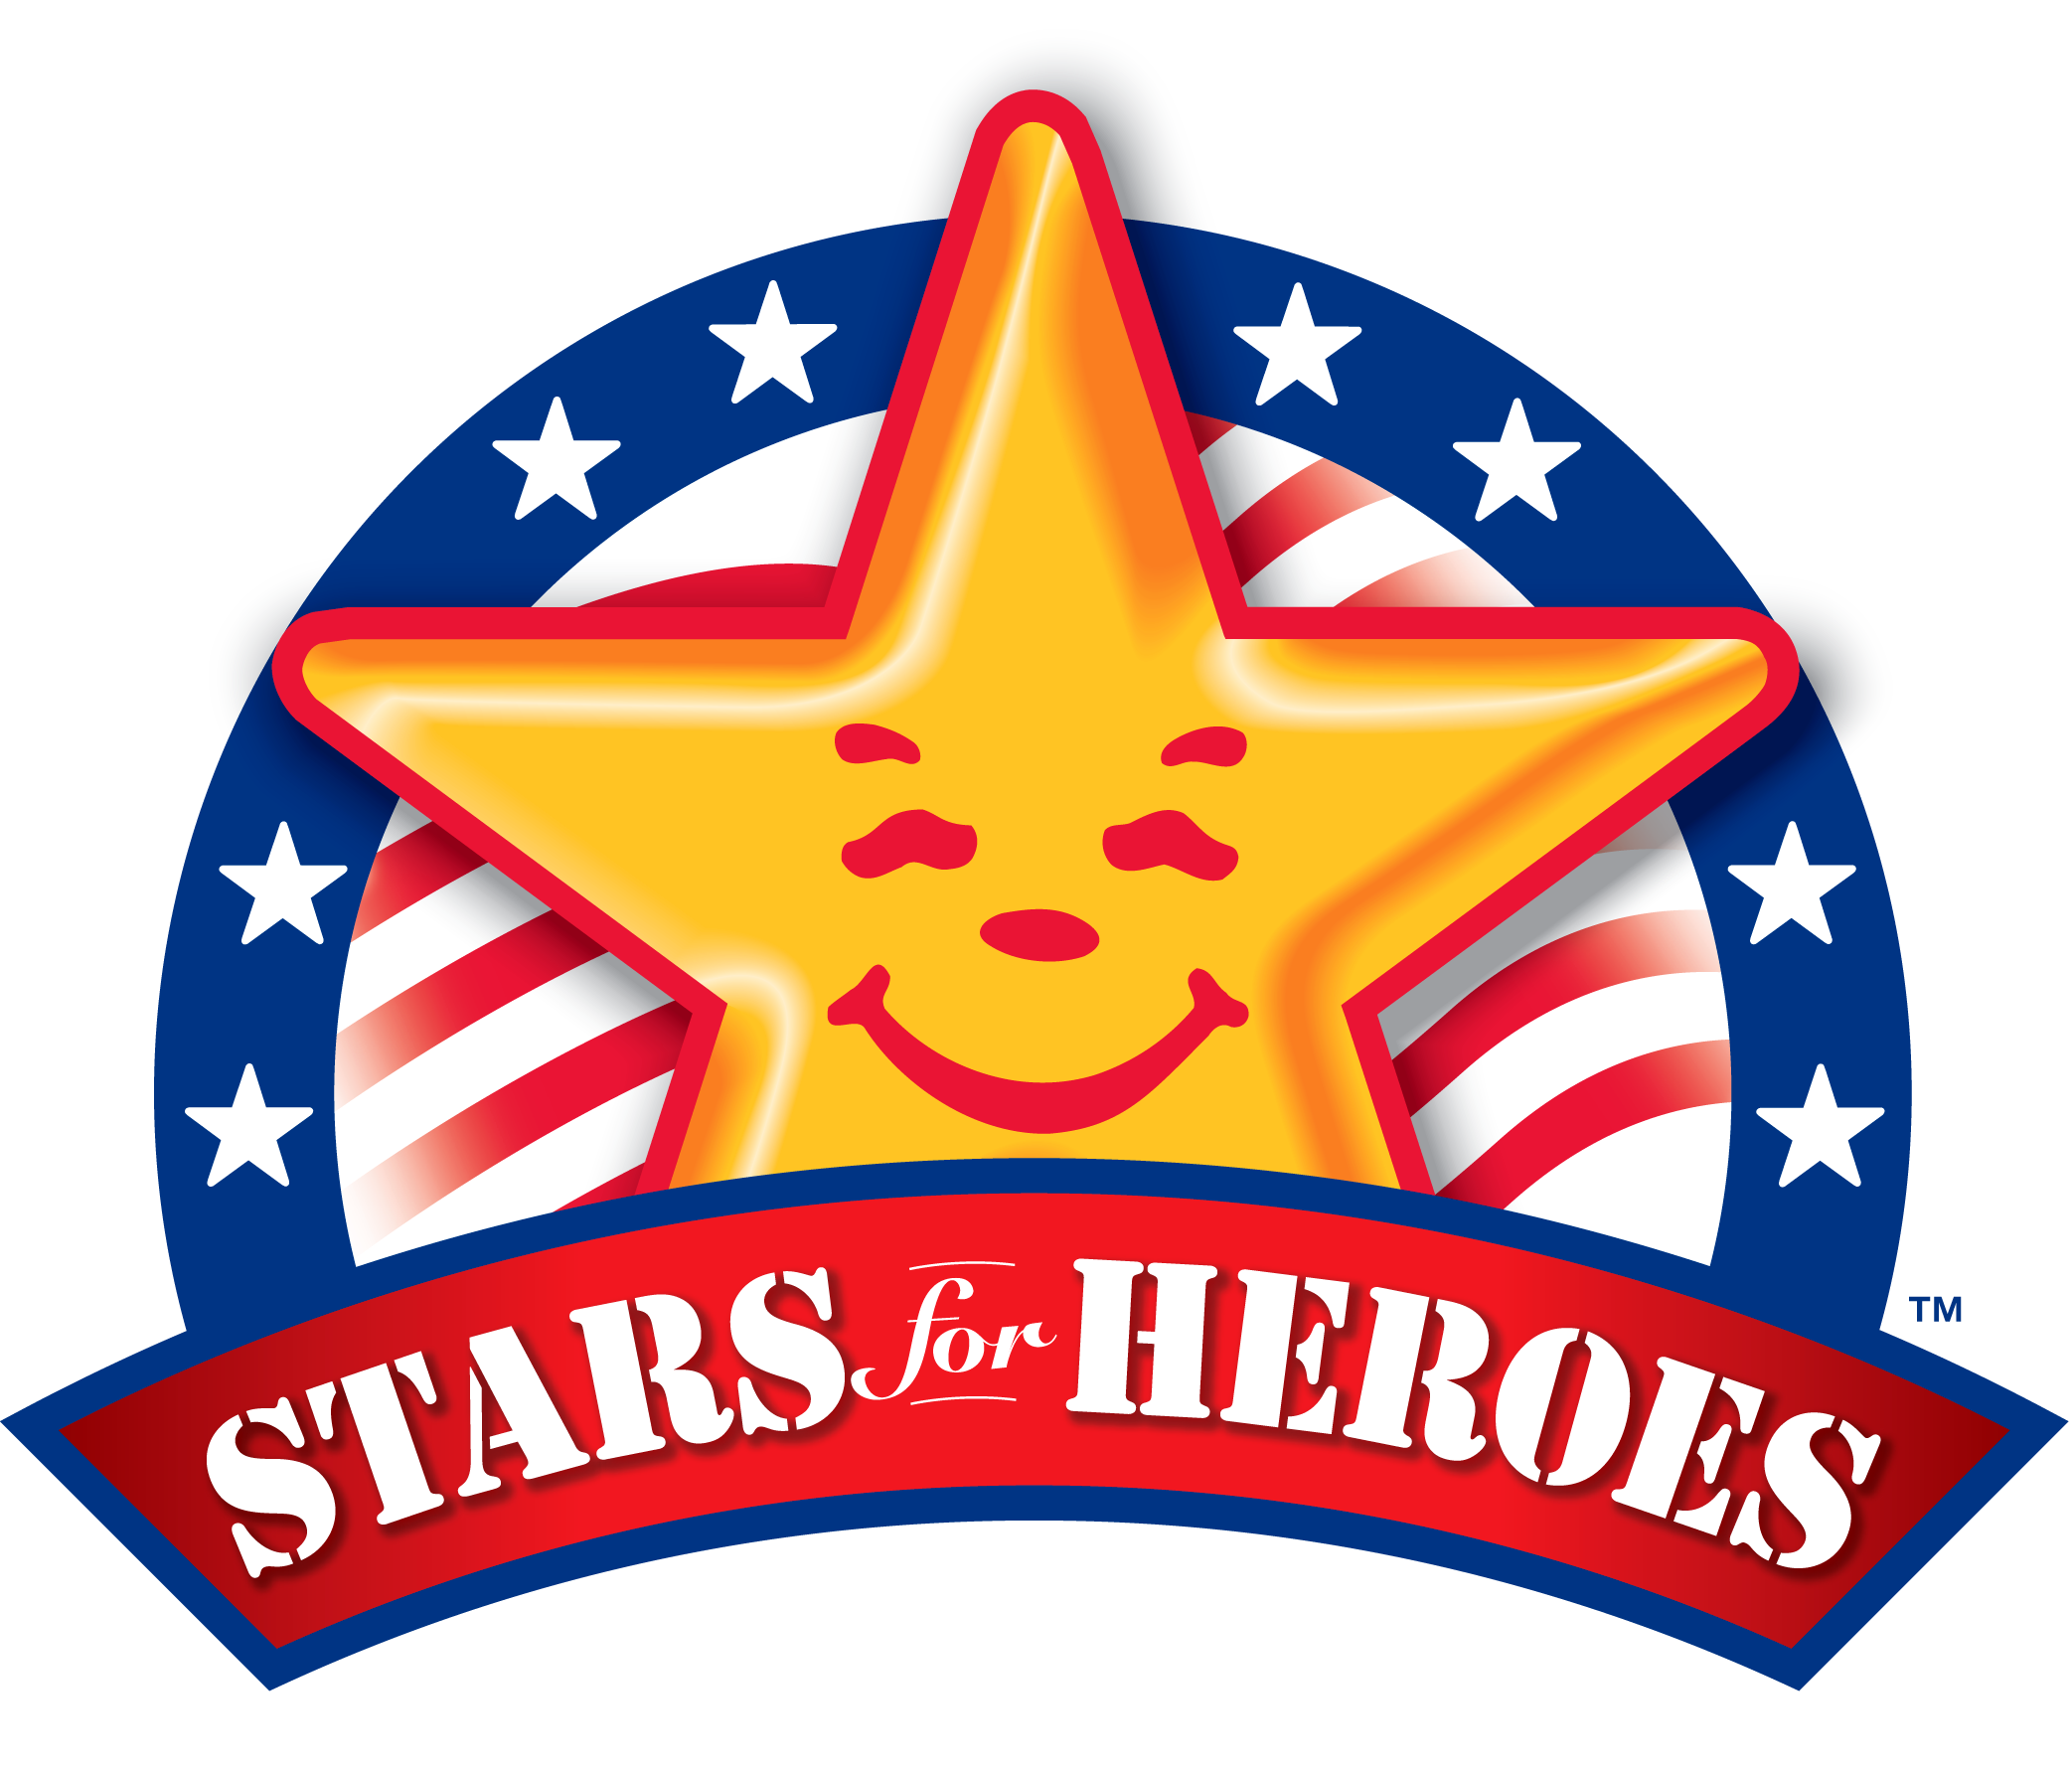 Stars for Heroes